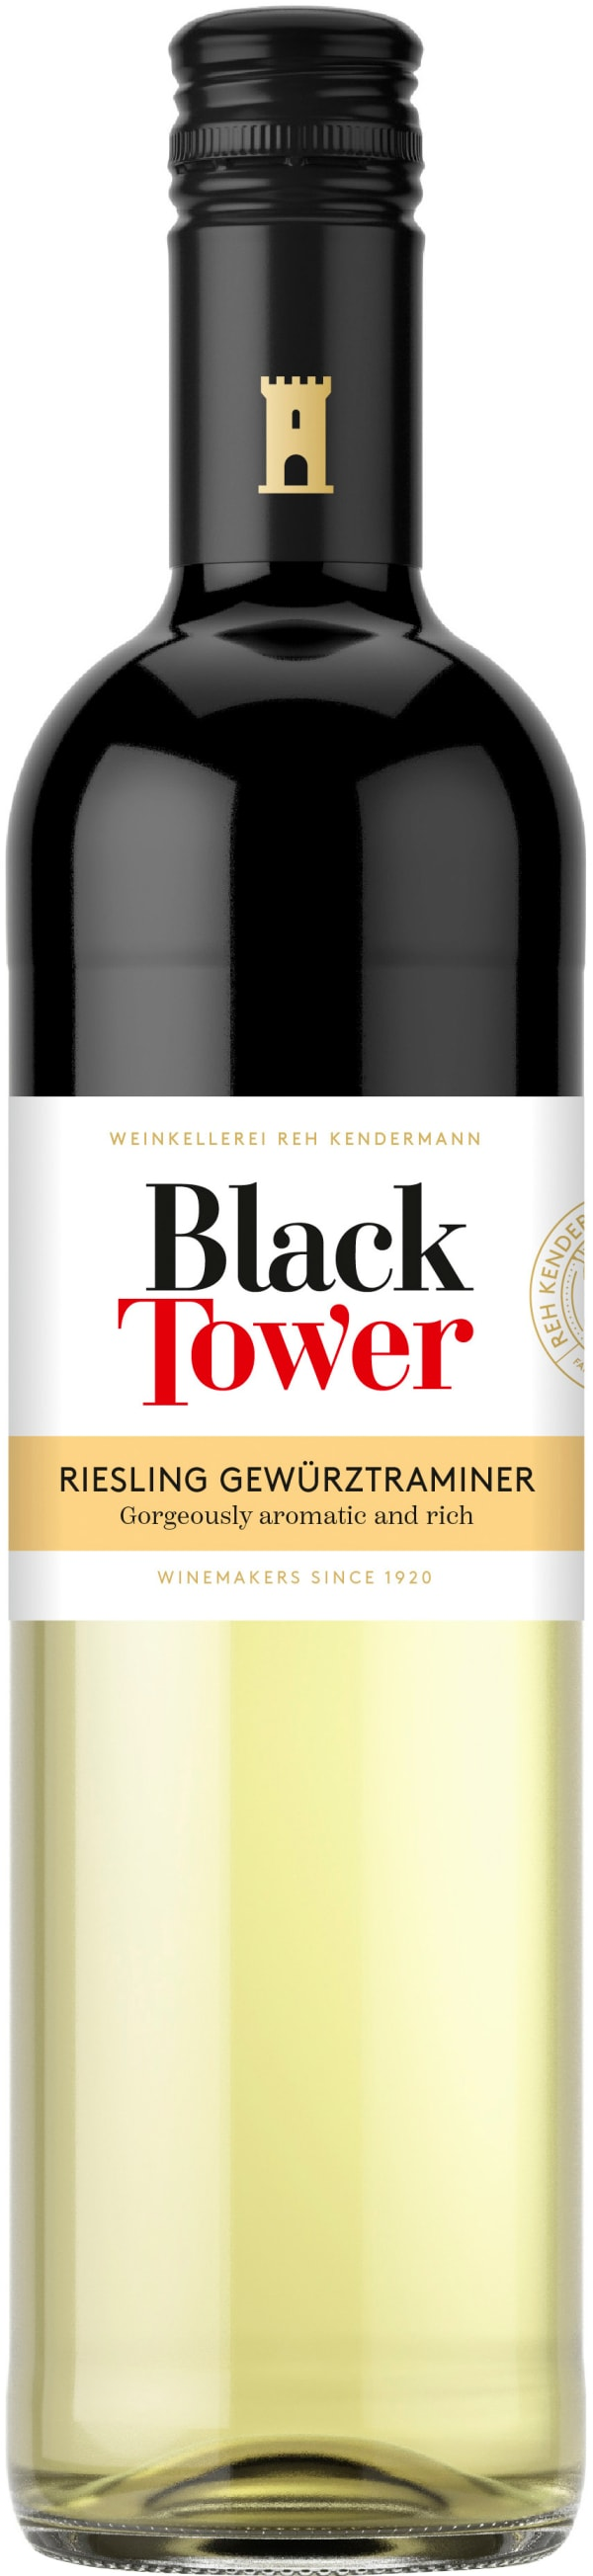 Black Tower Riesling Gewürztraminer 2018